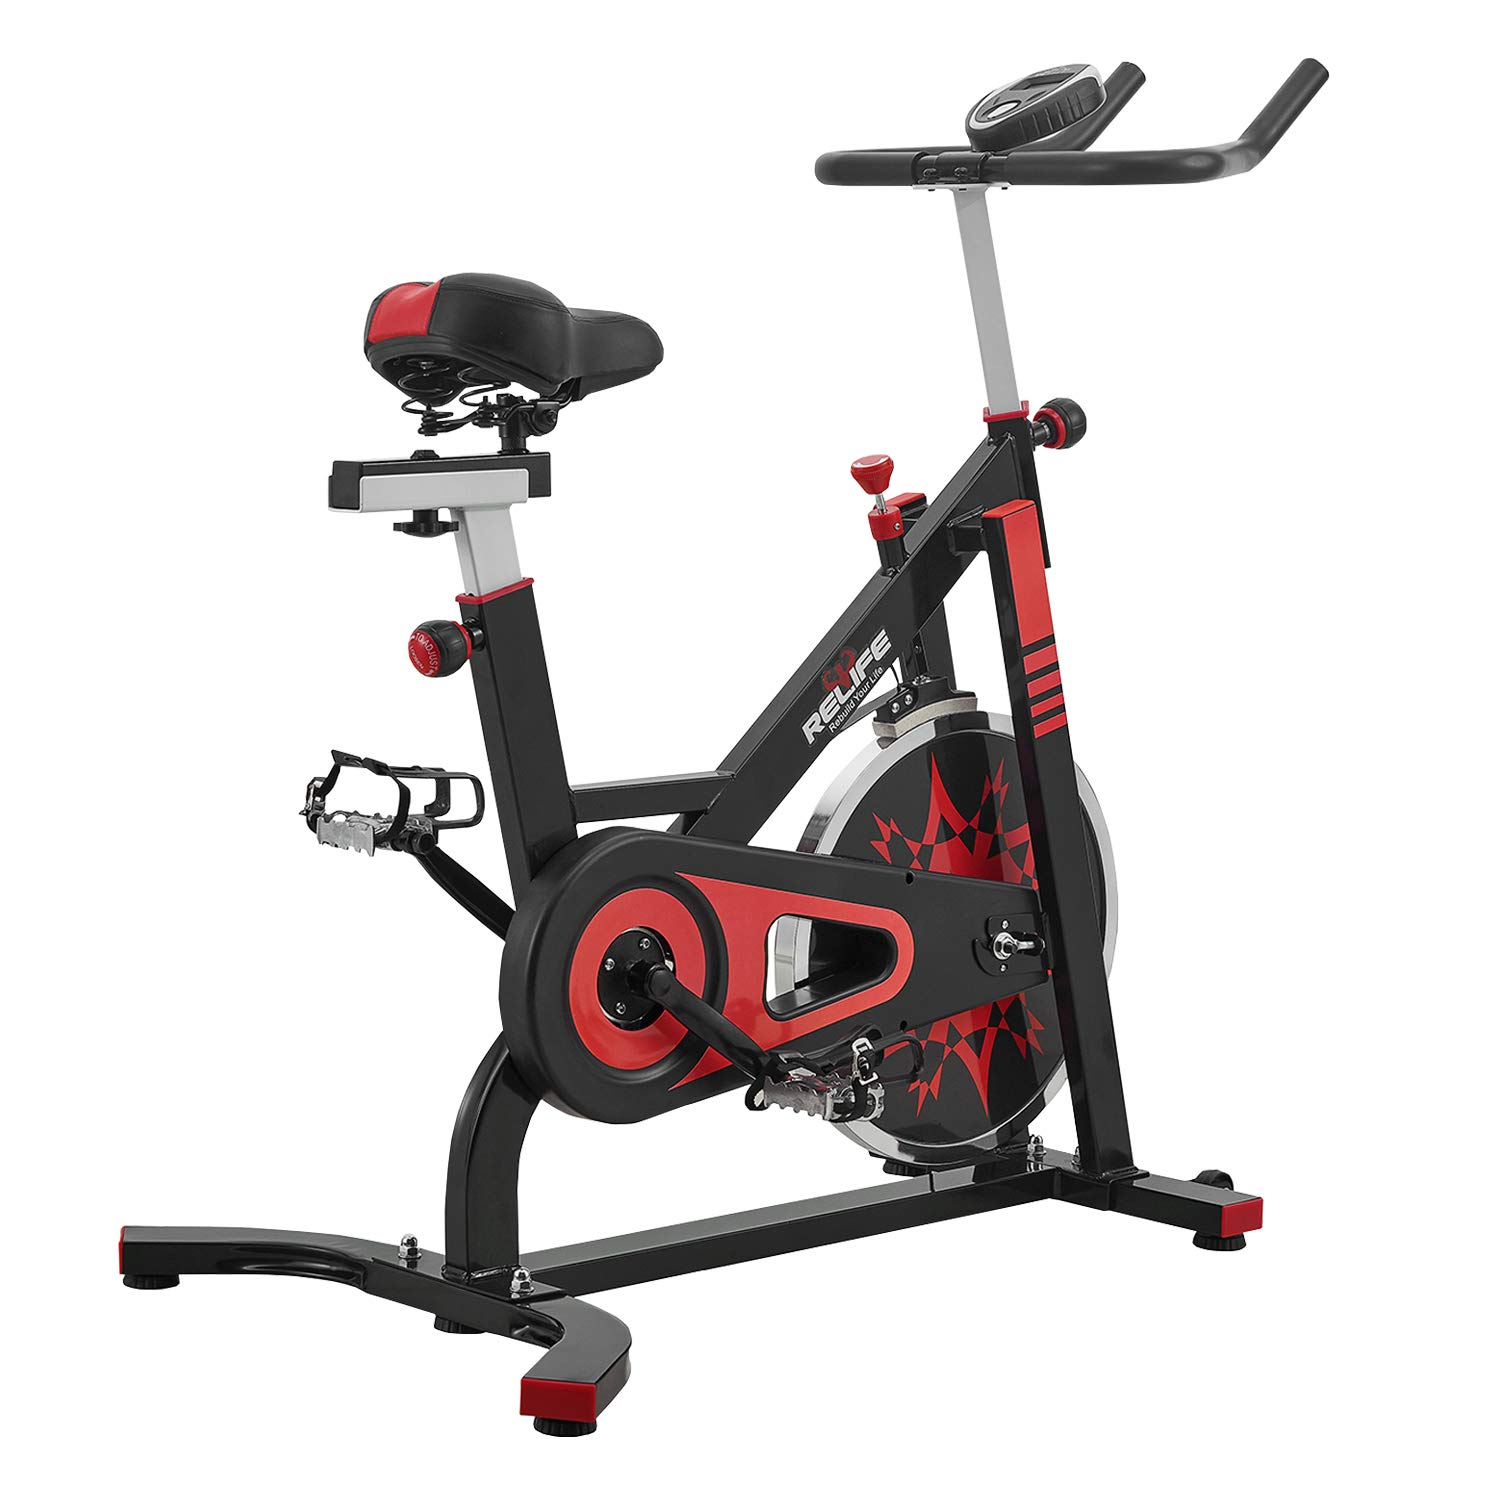 RELIFE REBUILD YOUR LIFE Spin Bike Stationary Indoor Cycling Gym Resistance Workout Home Gym Fitness Machine Exercise Bike